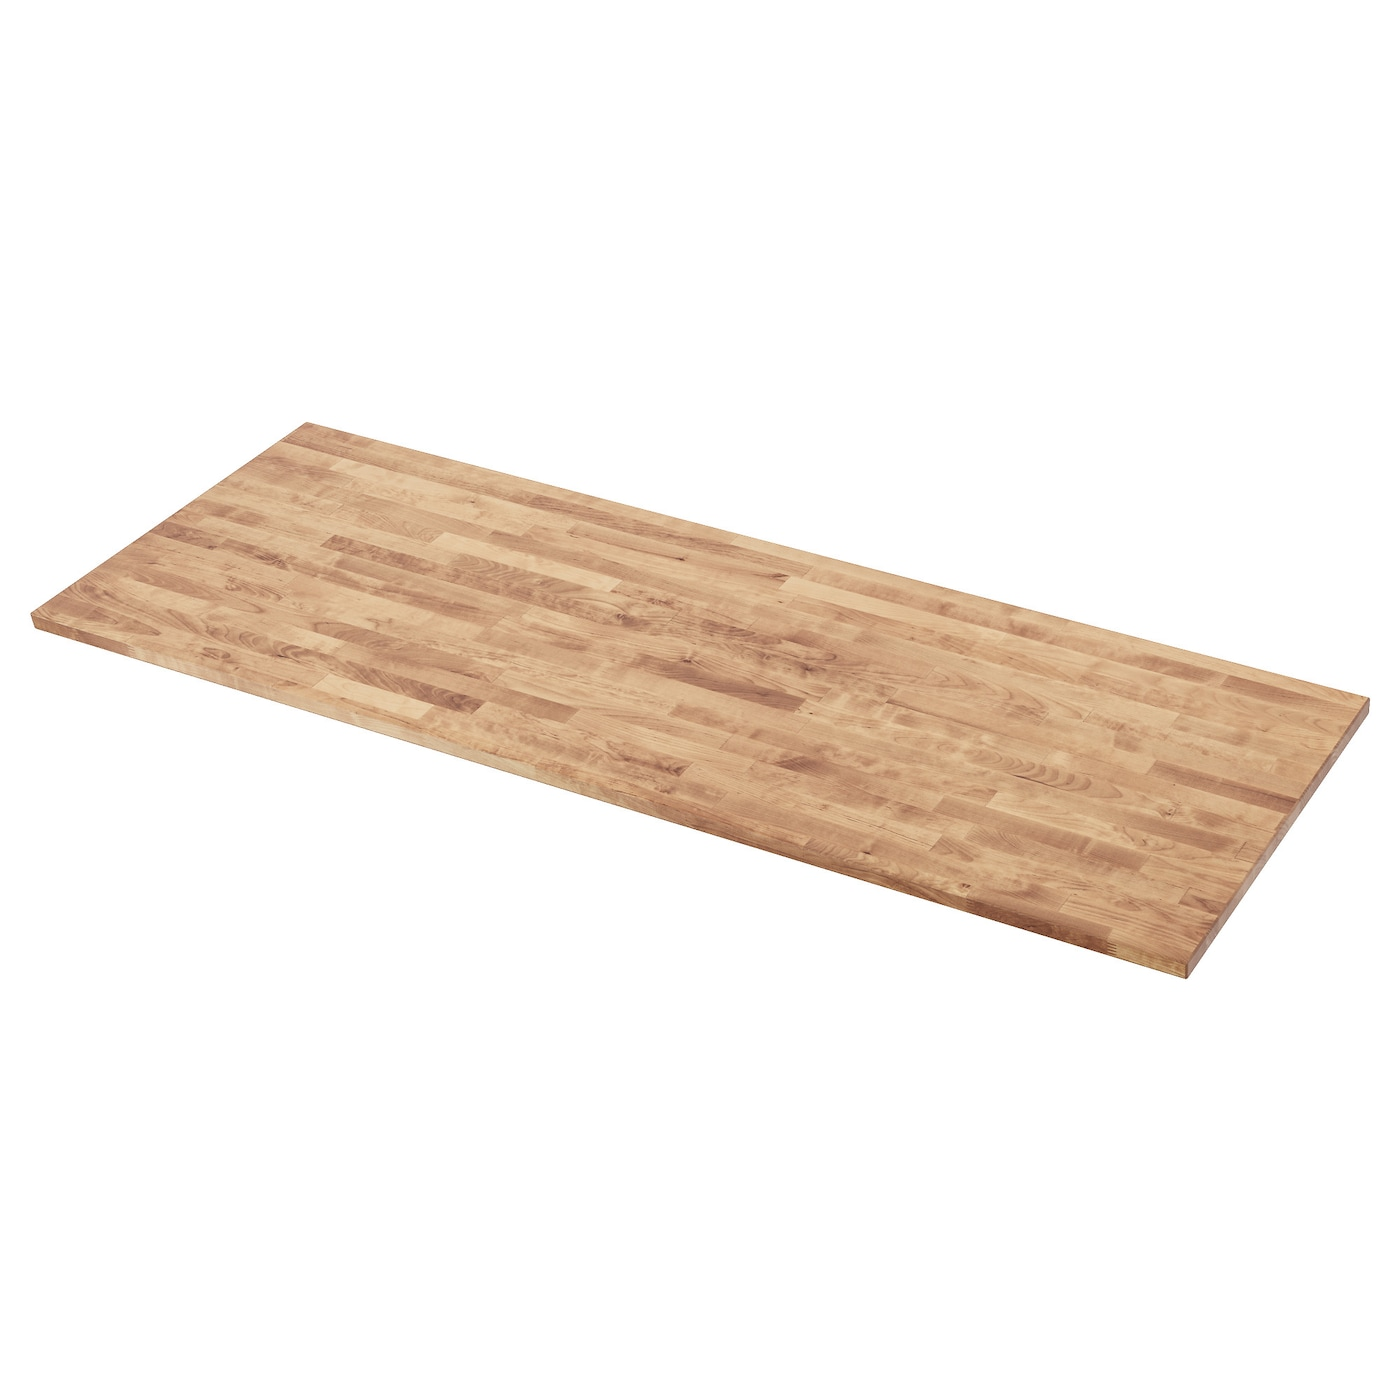 IKEA HAMMARP worktop Solid wood can be cut to the desired length.